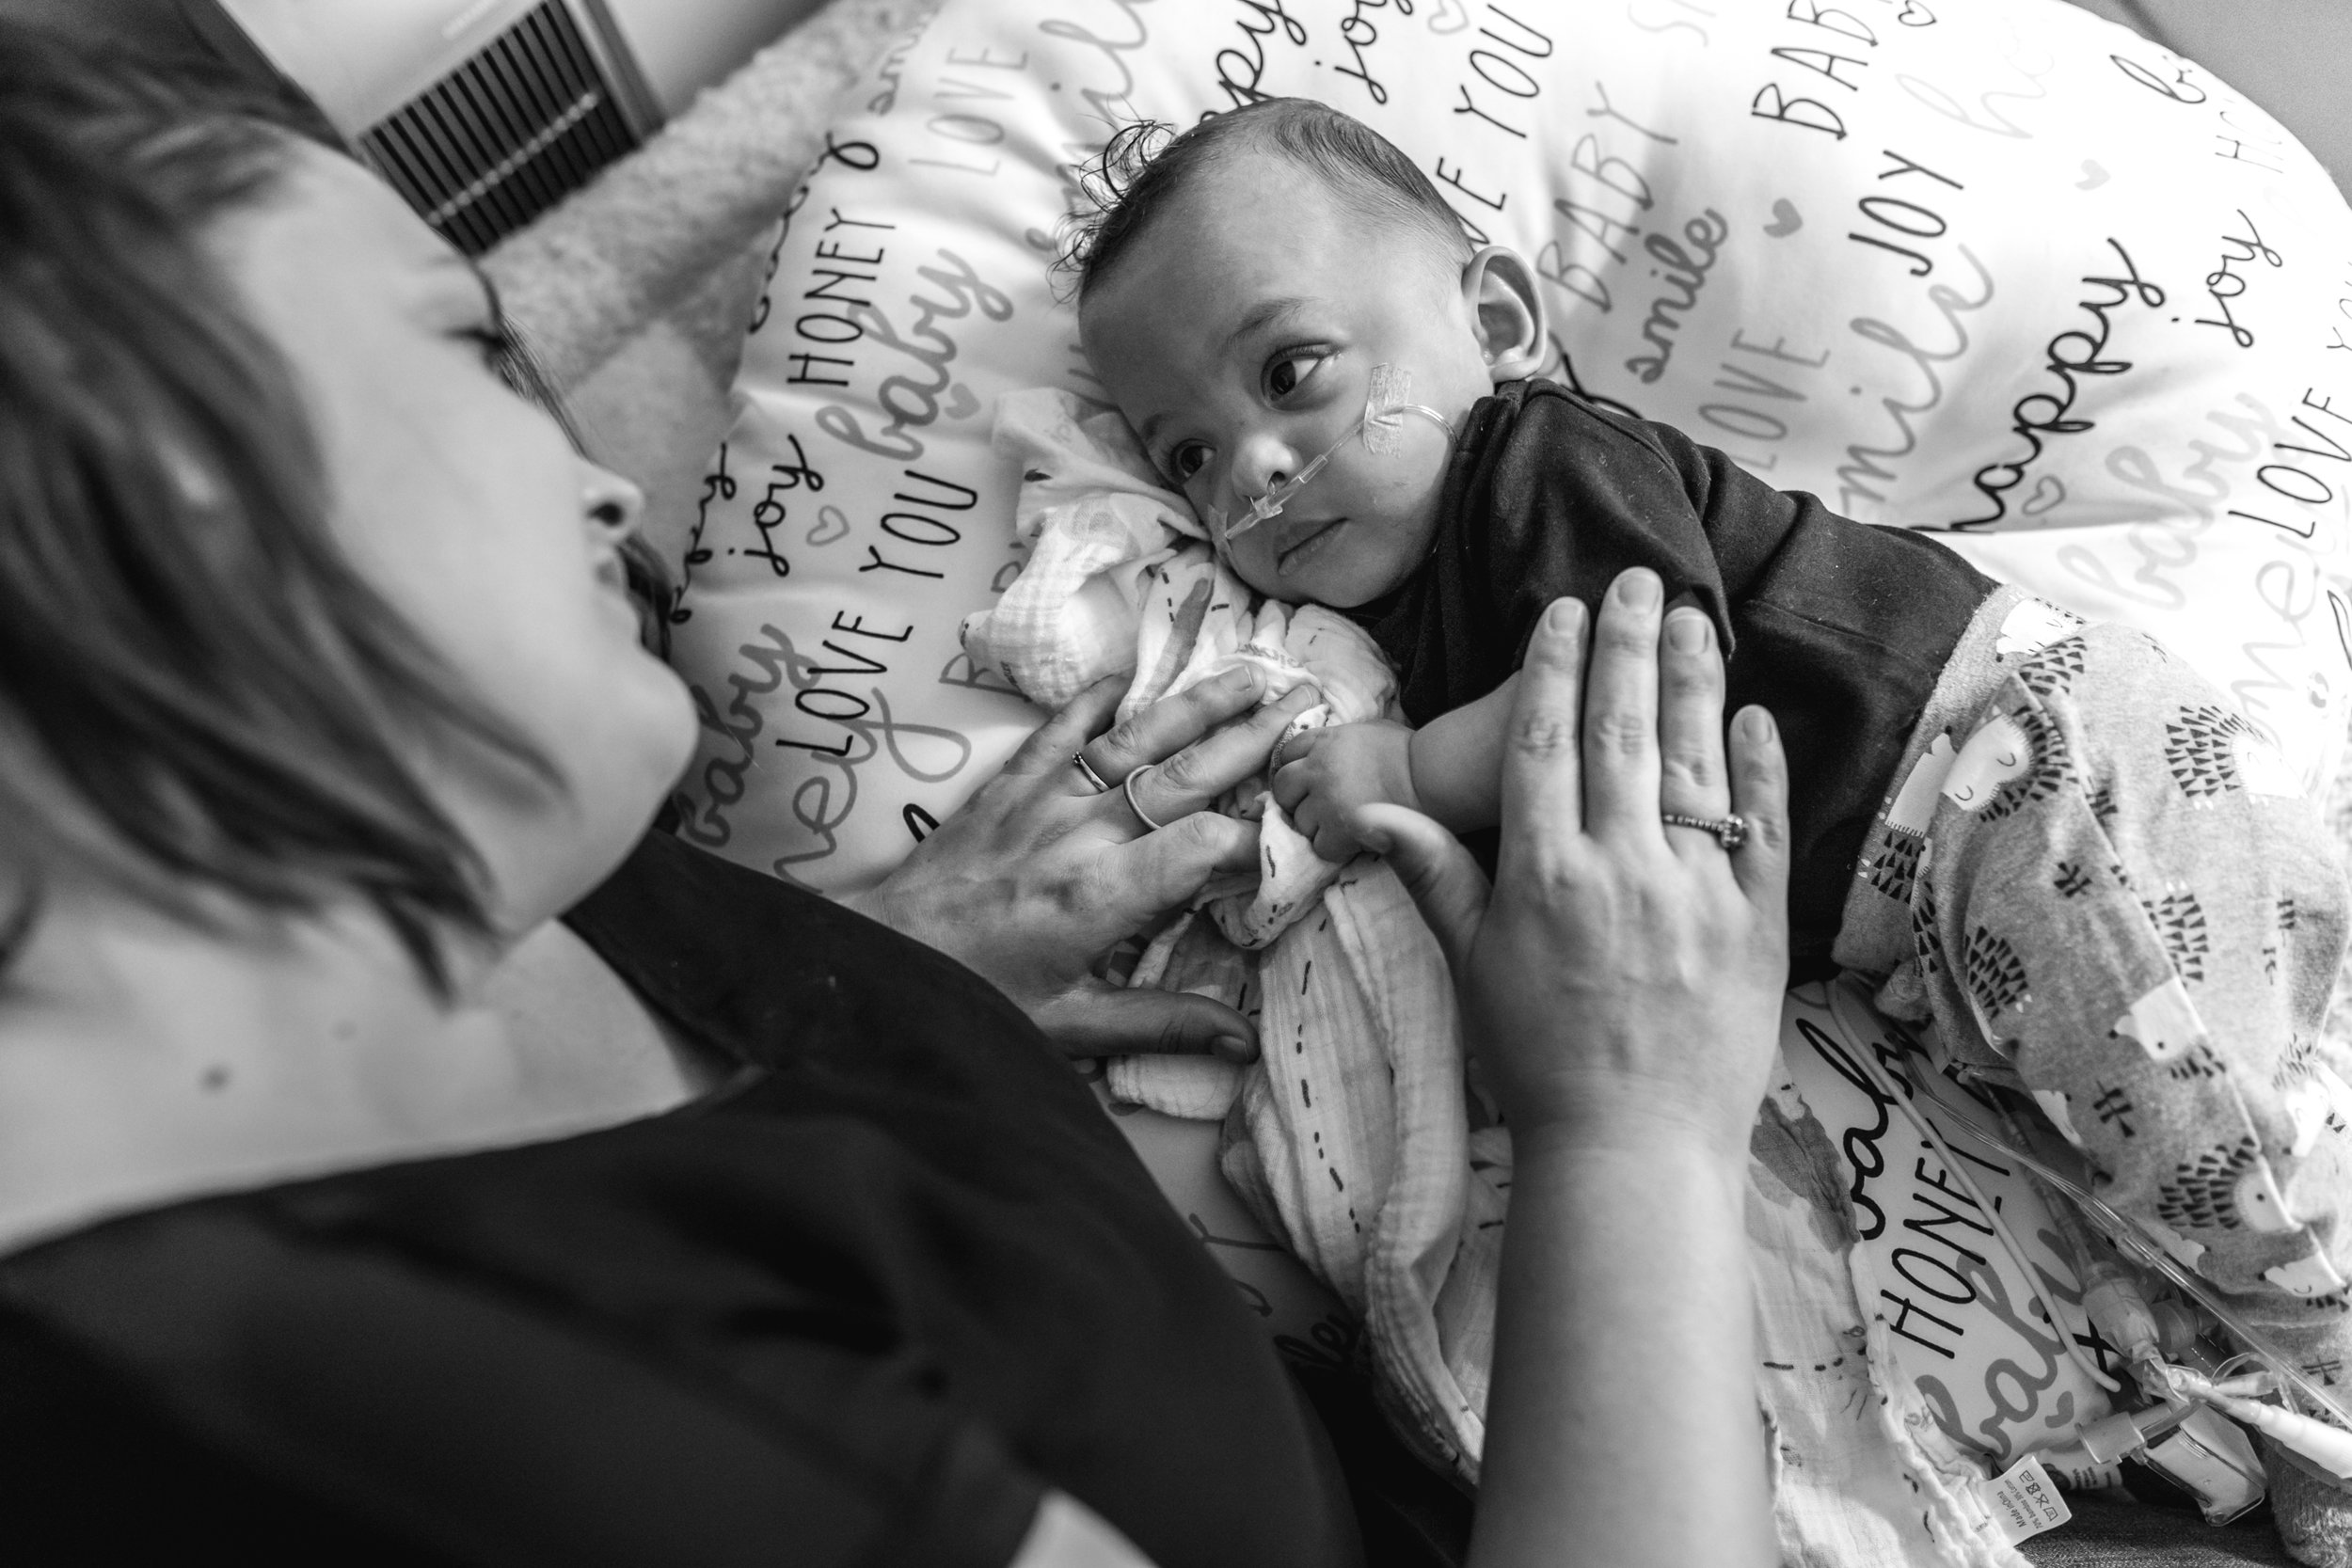 An infant boy looks up at his mom who has her hand on him